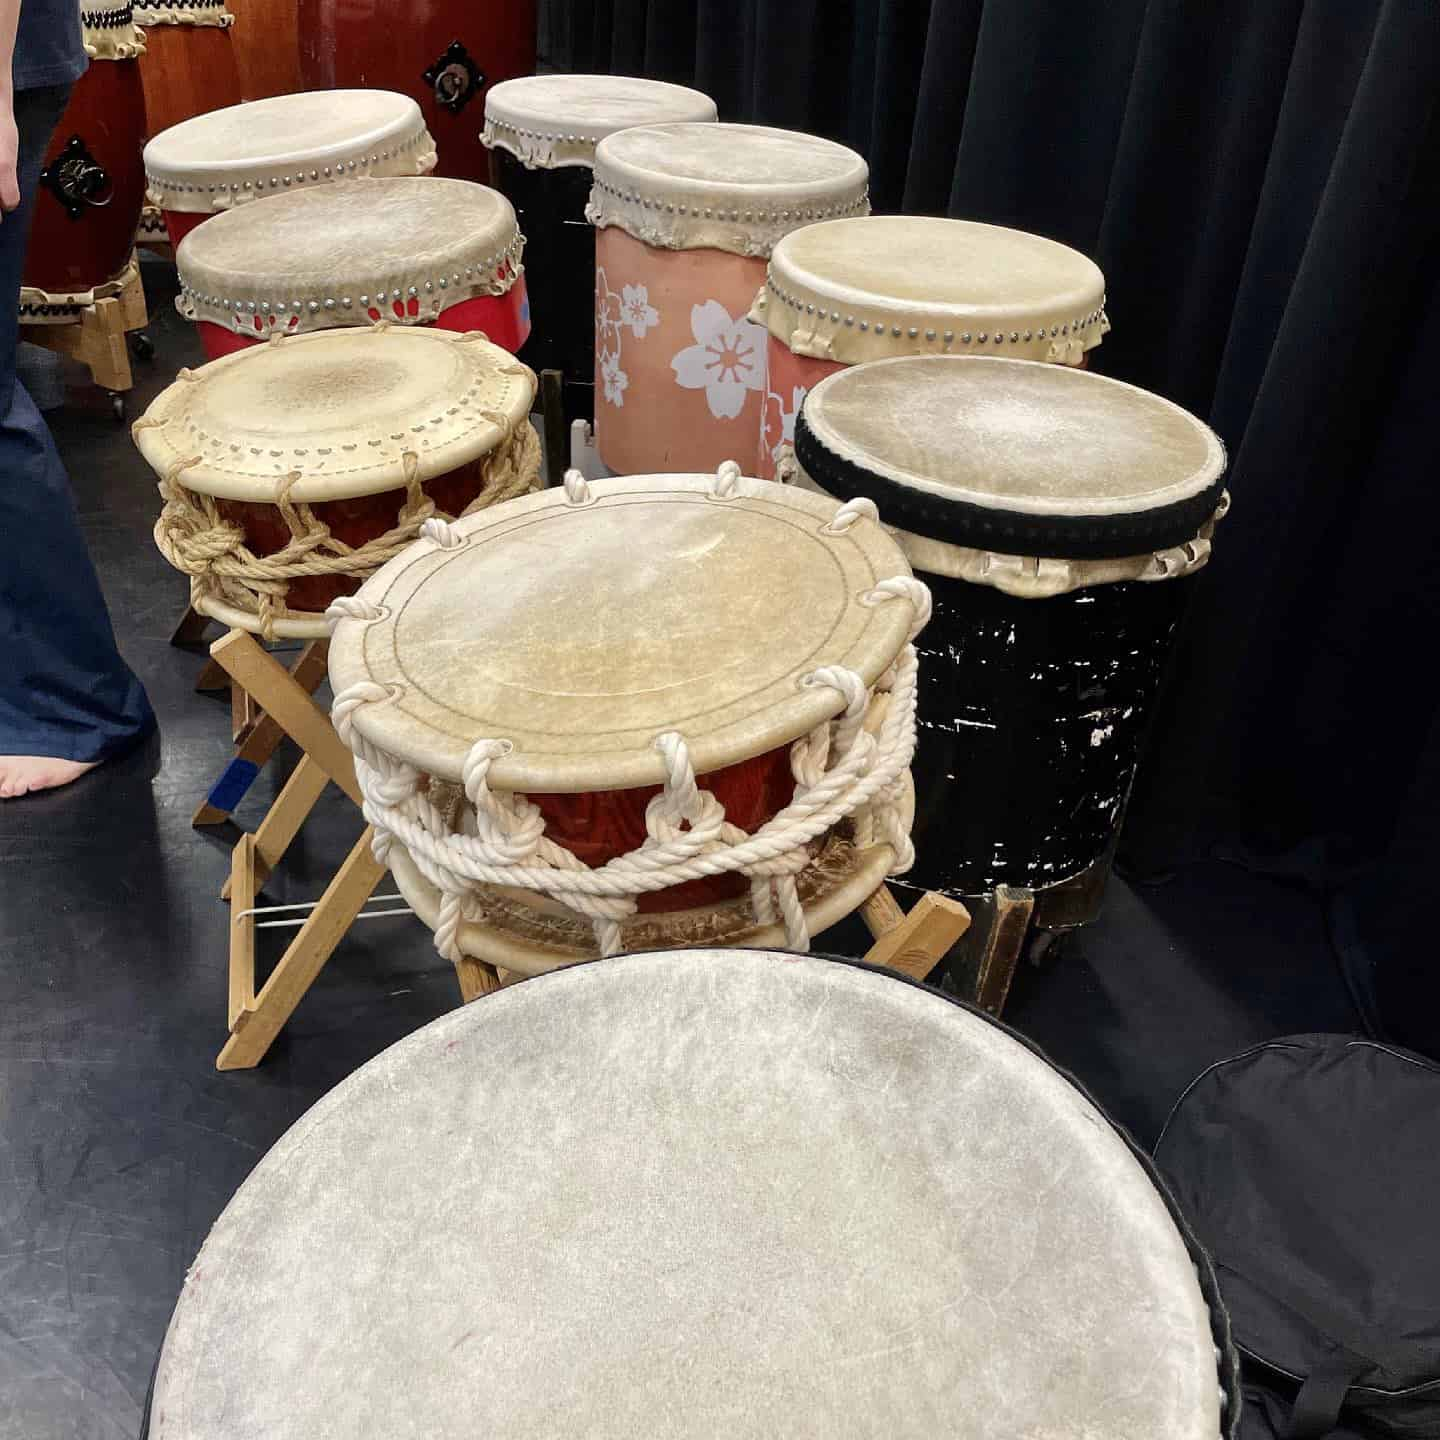 taiko drums in the studio